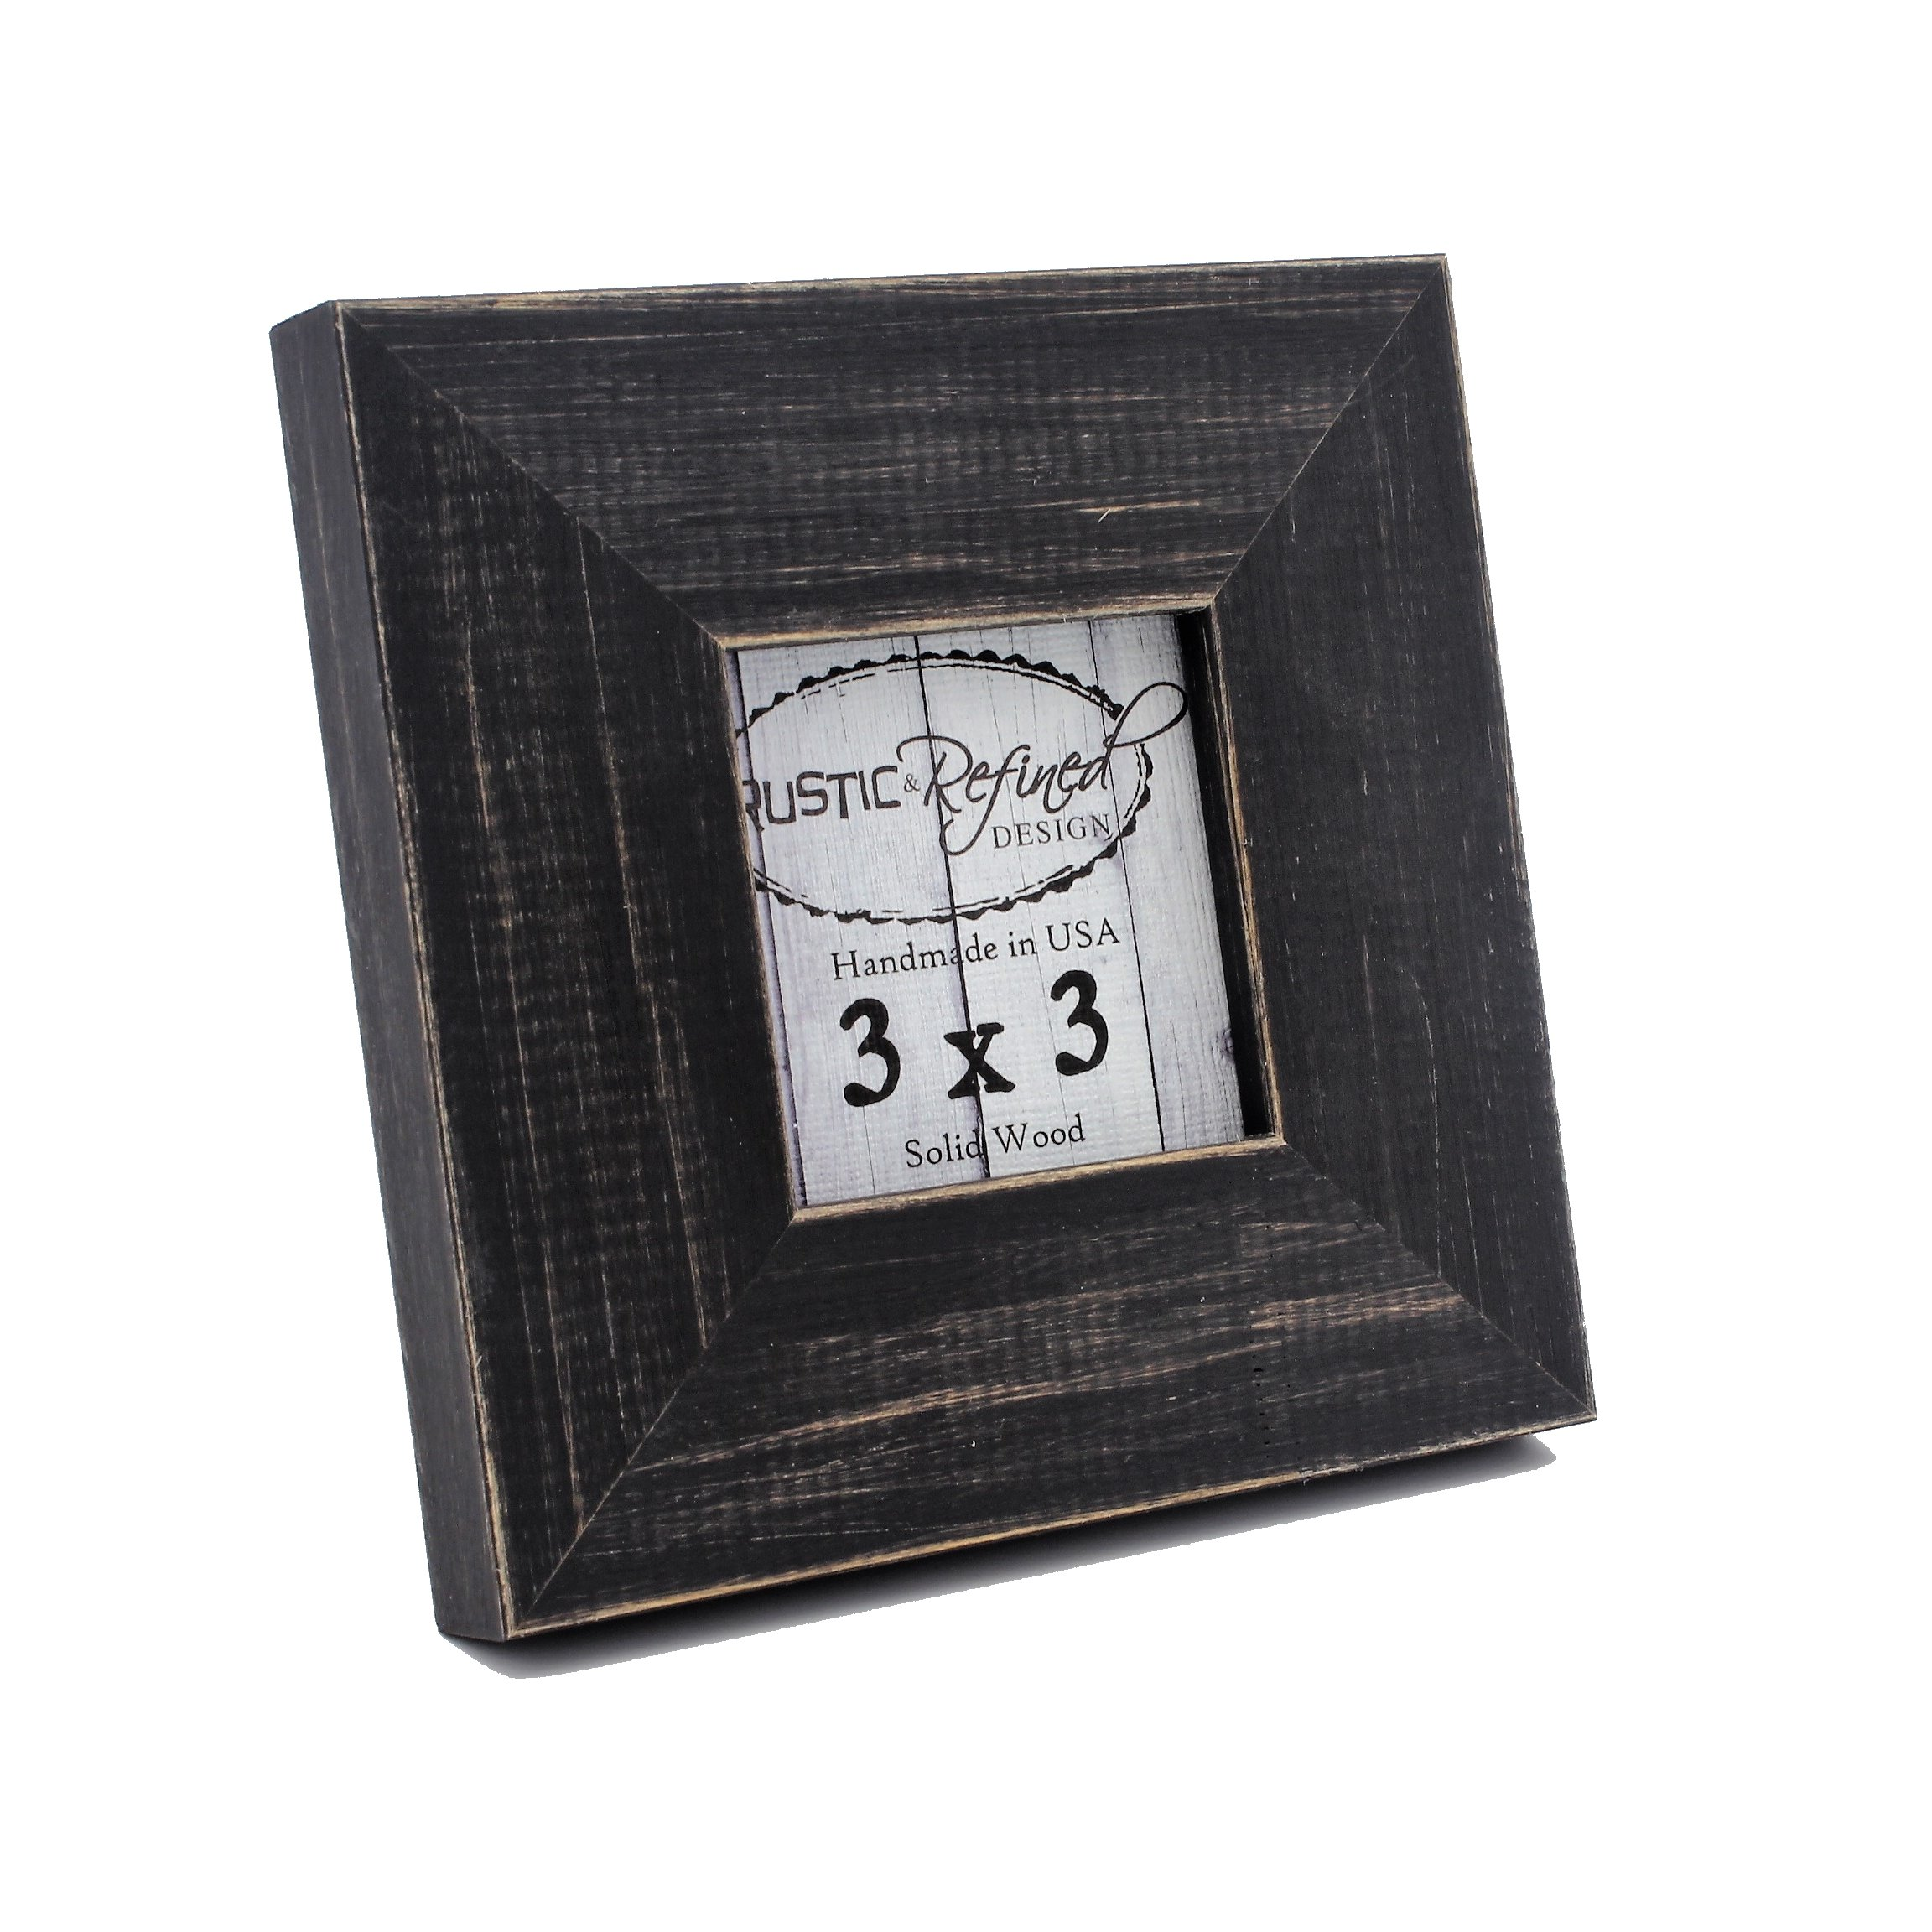 Rustic and Refined Design Country Colors Picture Frame - Solid Wood - Hand Made in USA (Charcoal Black, 3x3) by Rustic and Refined Design